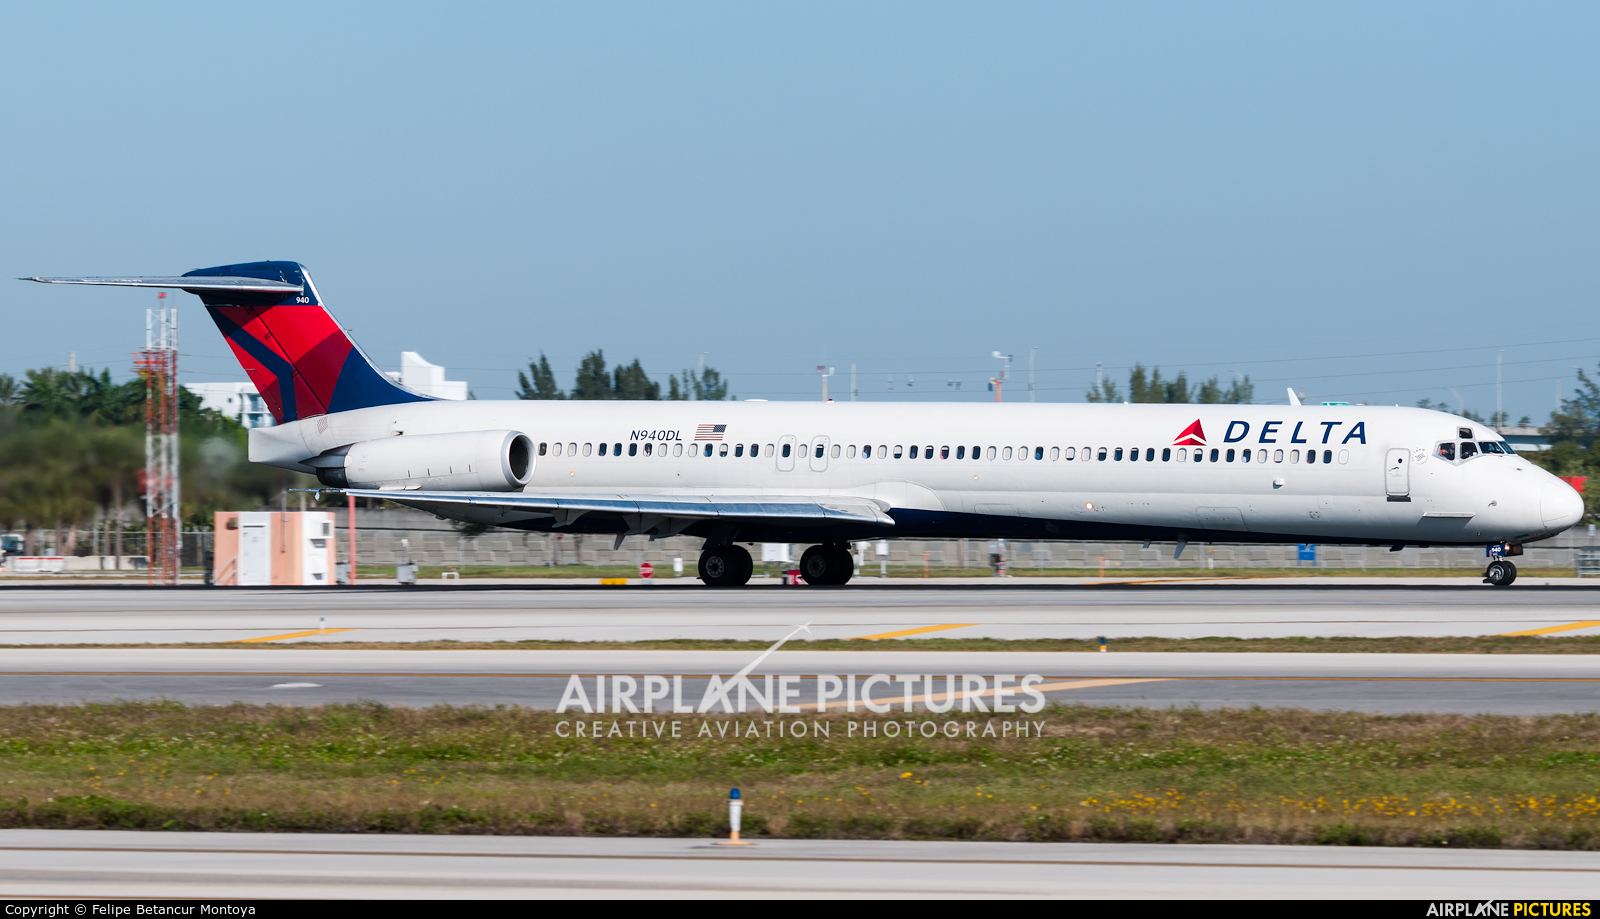 Delta Air Lines N940DL aircraft at Fort Lauderdale - Hollywood Intl